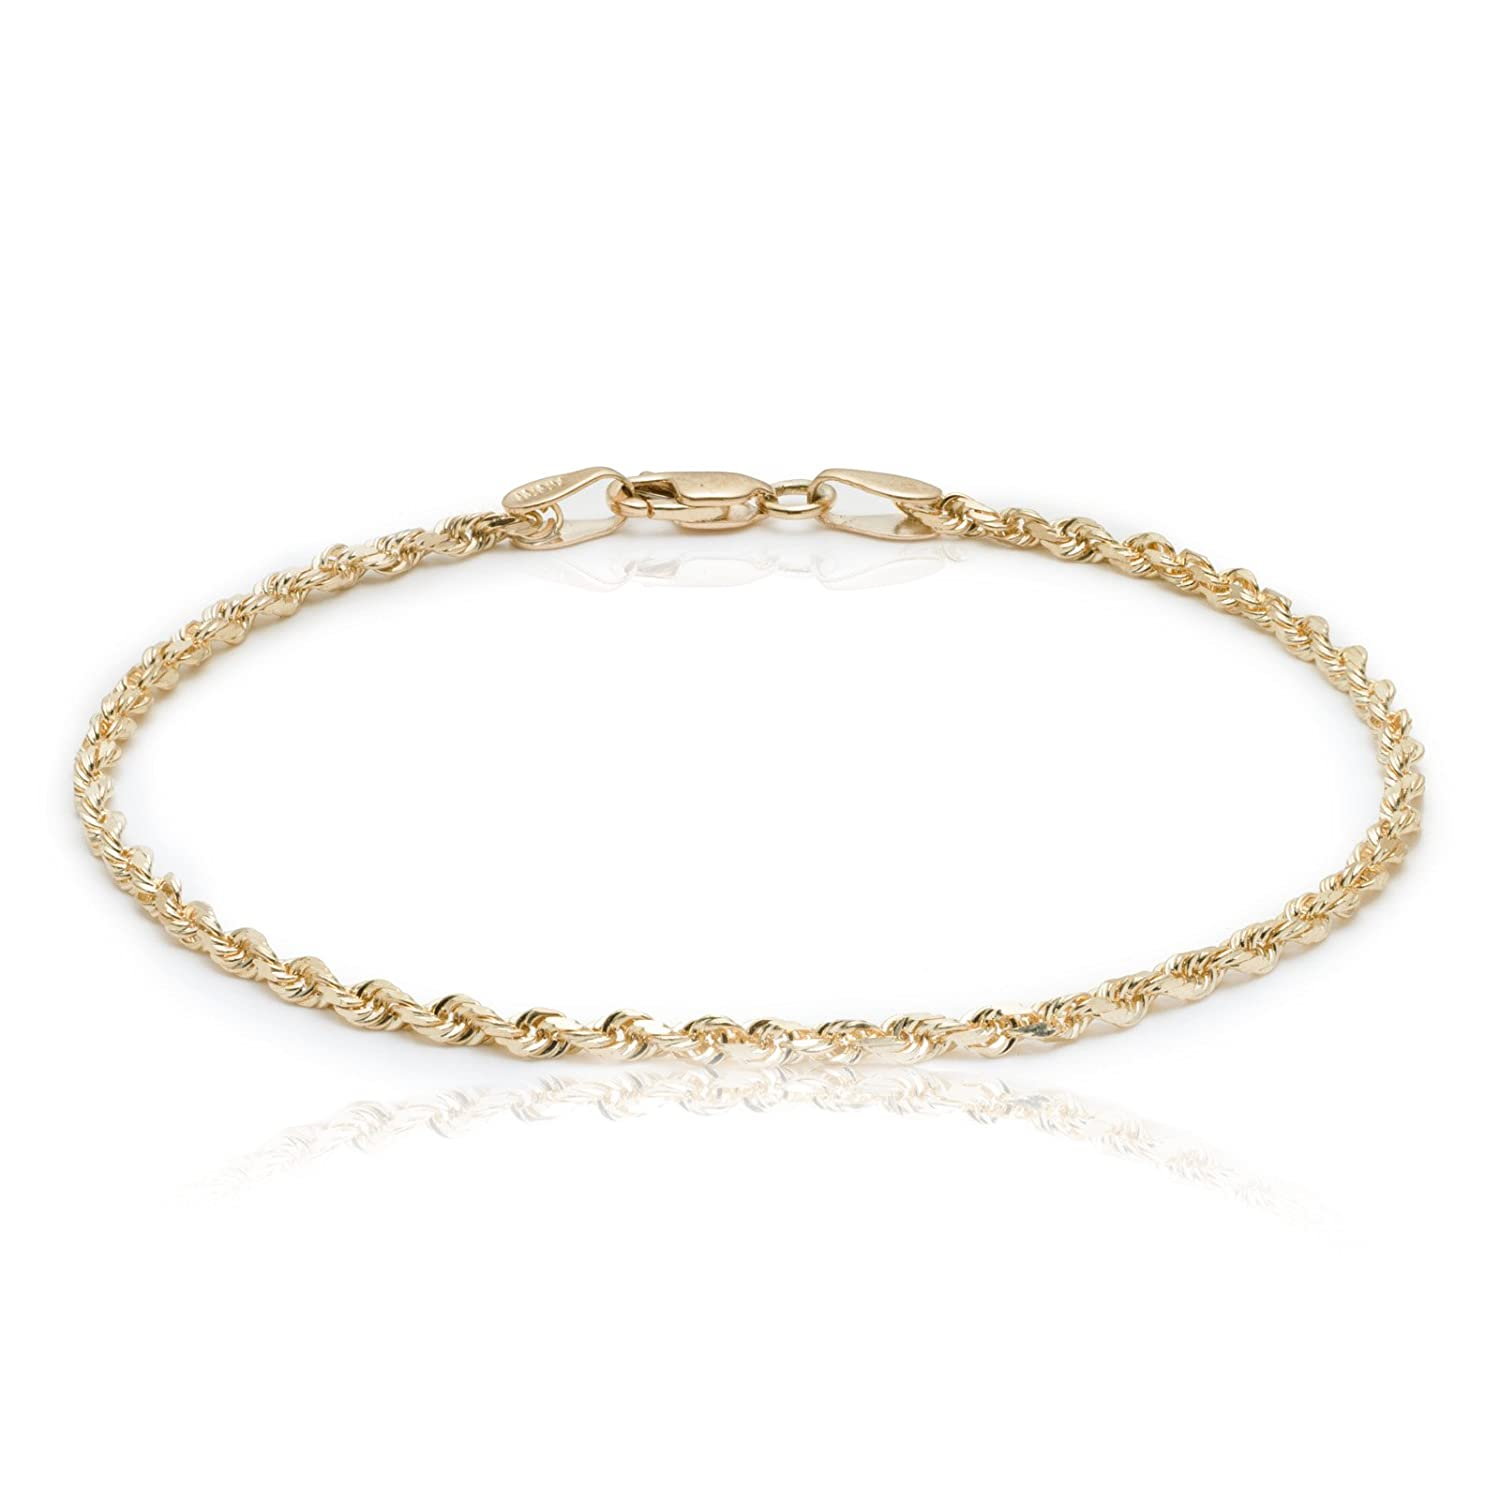 solid yellow nuragold s bracelet watches brand women fine bracelets find at anklet gold and chain curb jewelry cuban real products online